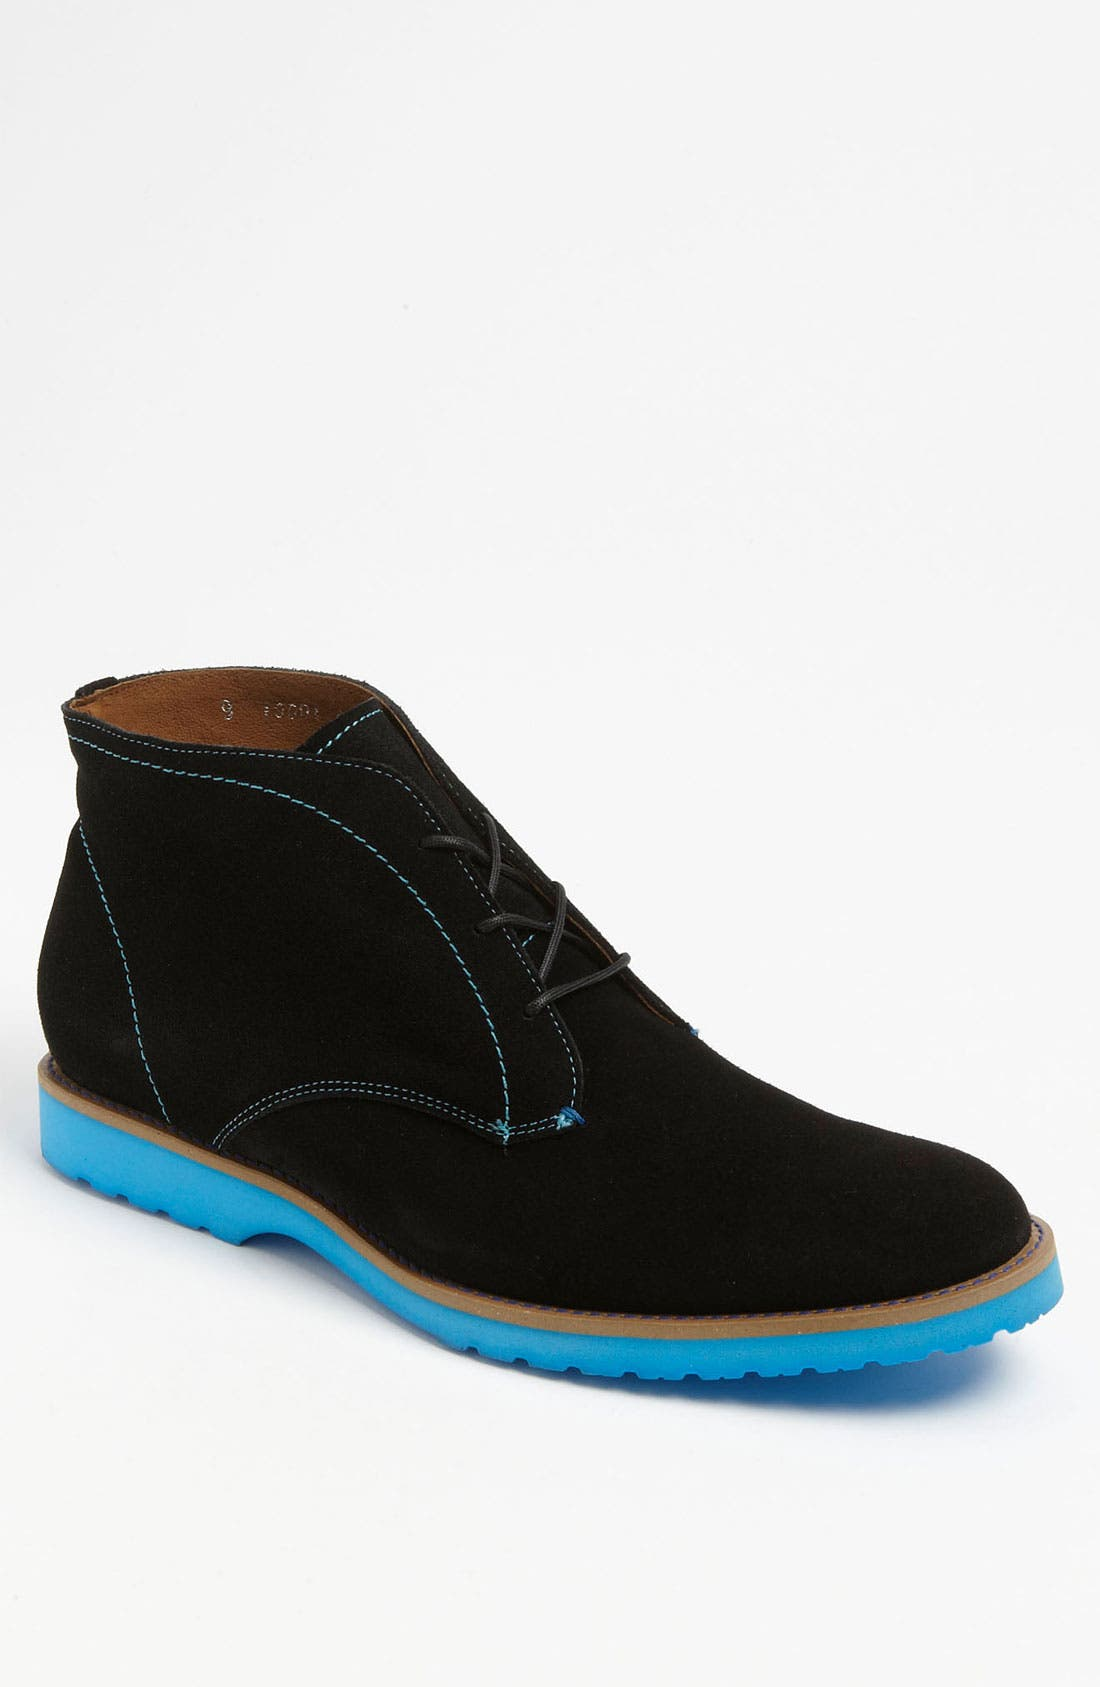 Alternate Image 1 Selected - J.D. Fisk 'Viego' Chukka Boot